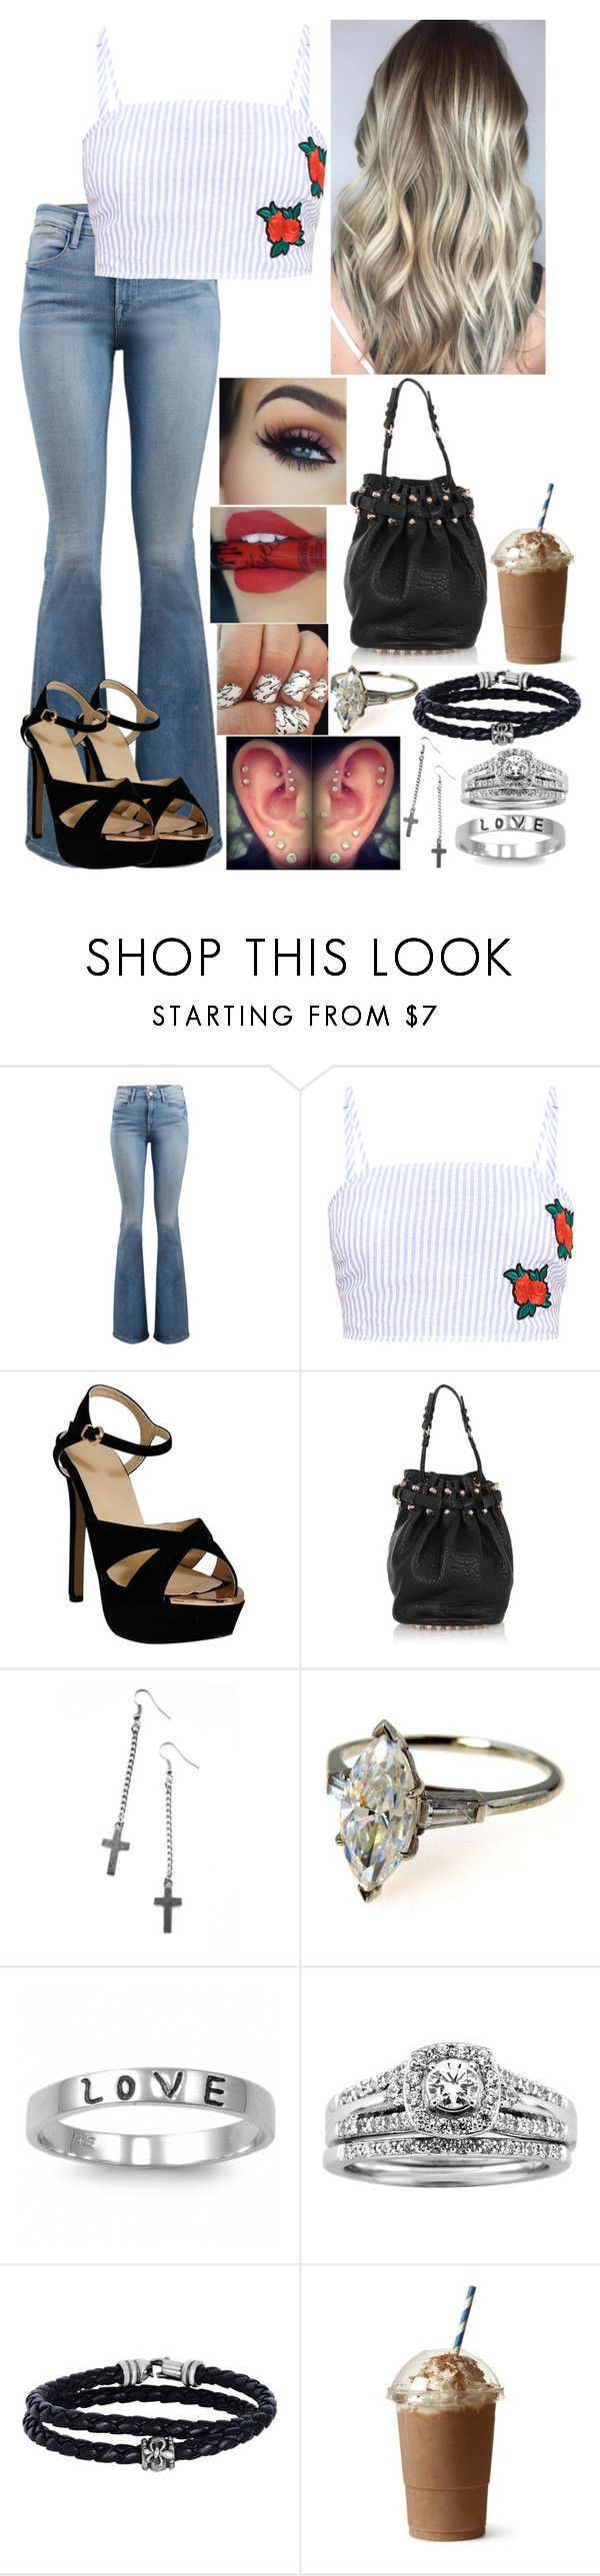 """Untitled #3271 - NXT Takeover: Chicago - 5/20/17"" by nicolerunnels ❤ liked on Polyvore featuring Frame, J.A.K., Alexander Wang, Fantasy Jewelry Box, A.Jaffe and Phillip Gavriel"